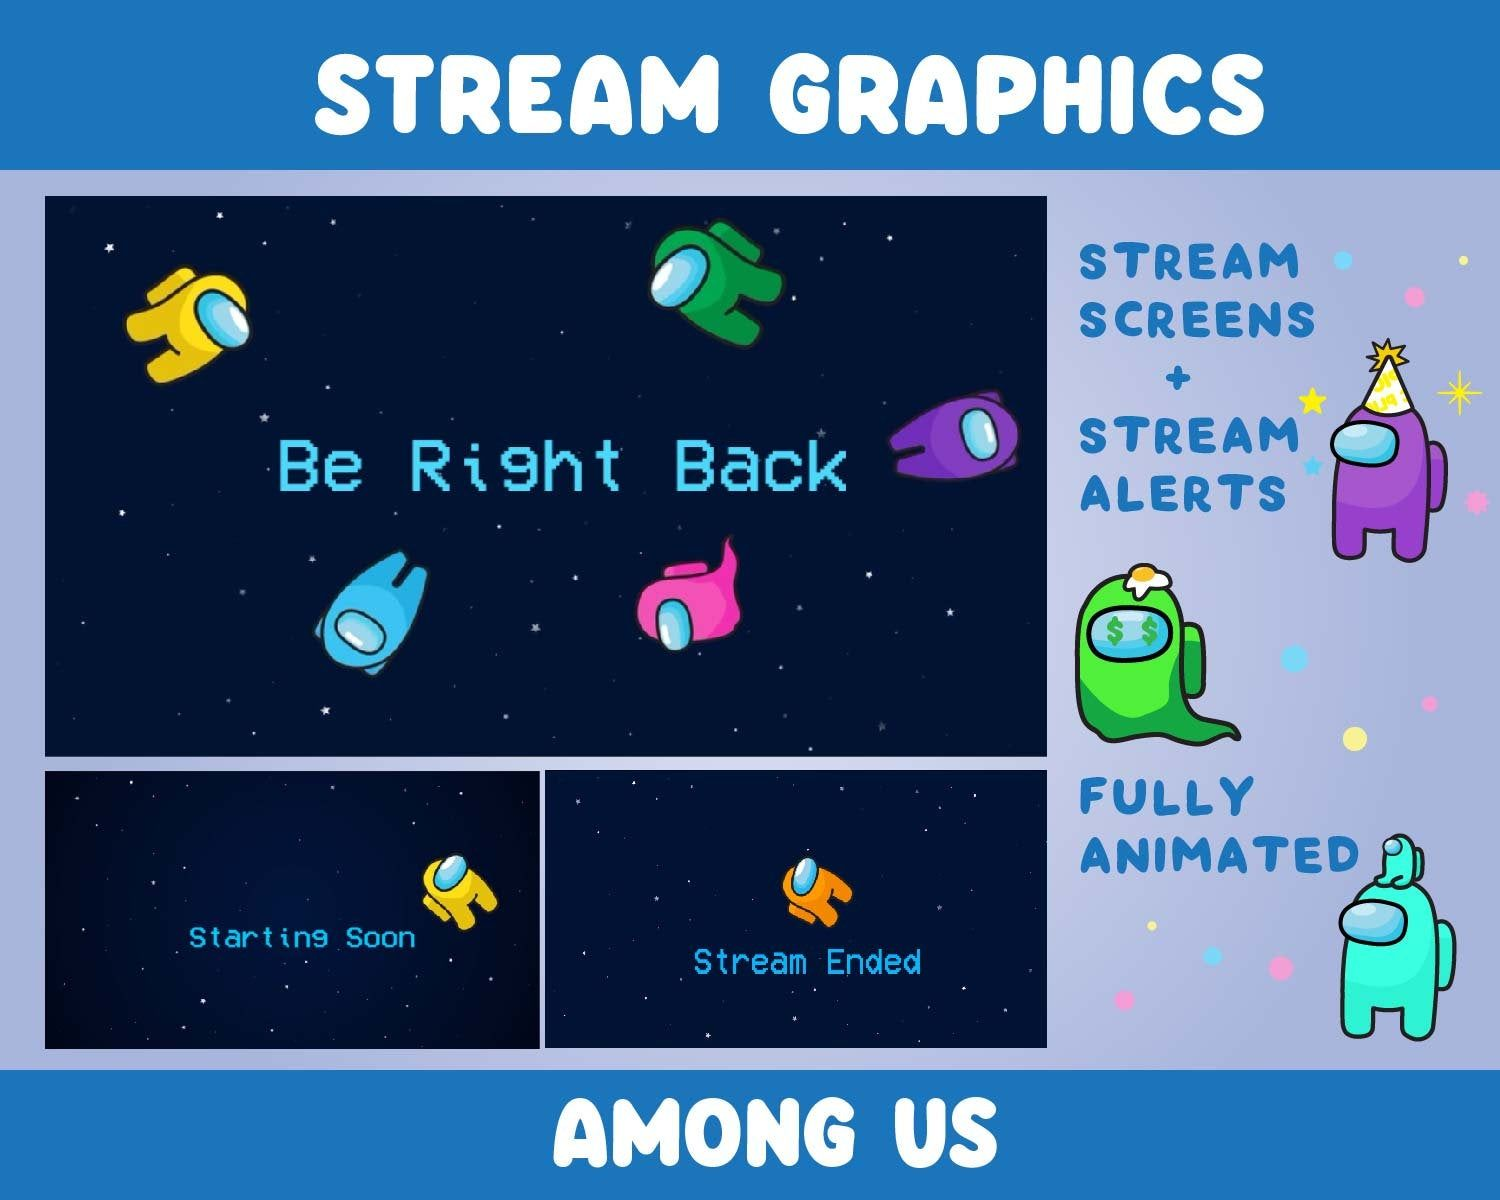 Among Us Animated Stream Screens And Alerts Etsy In 2021 Twitch Streaming Setup Streaming Animation